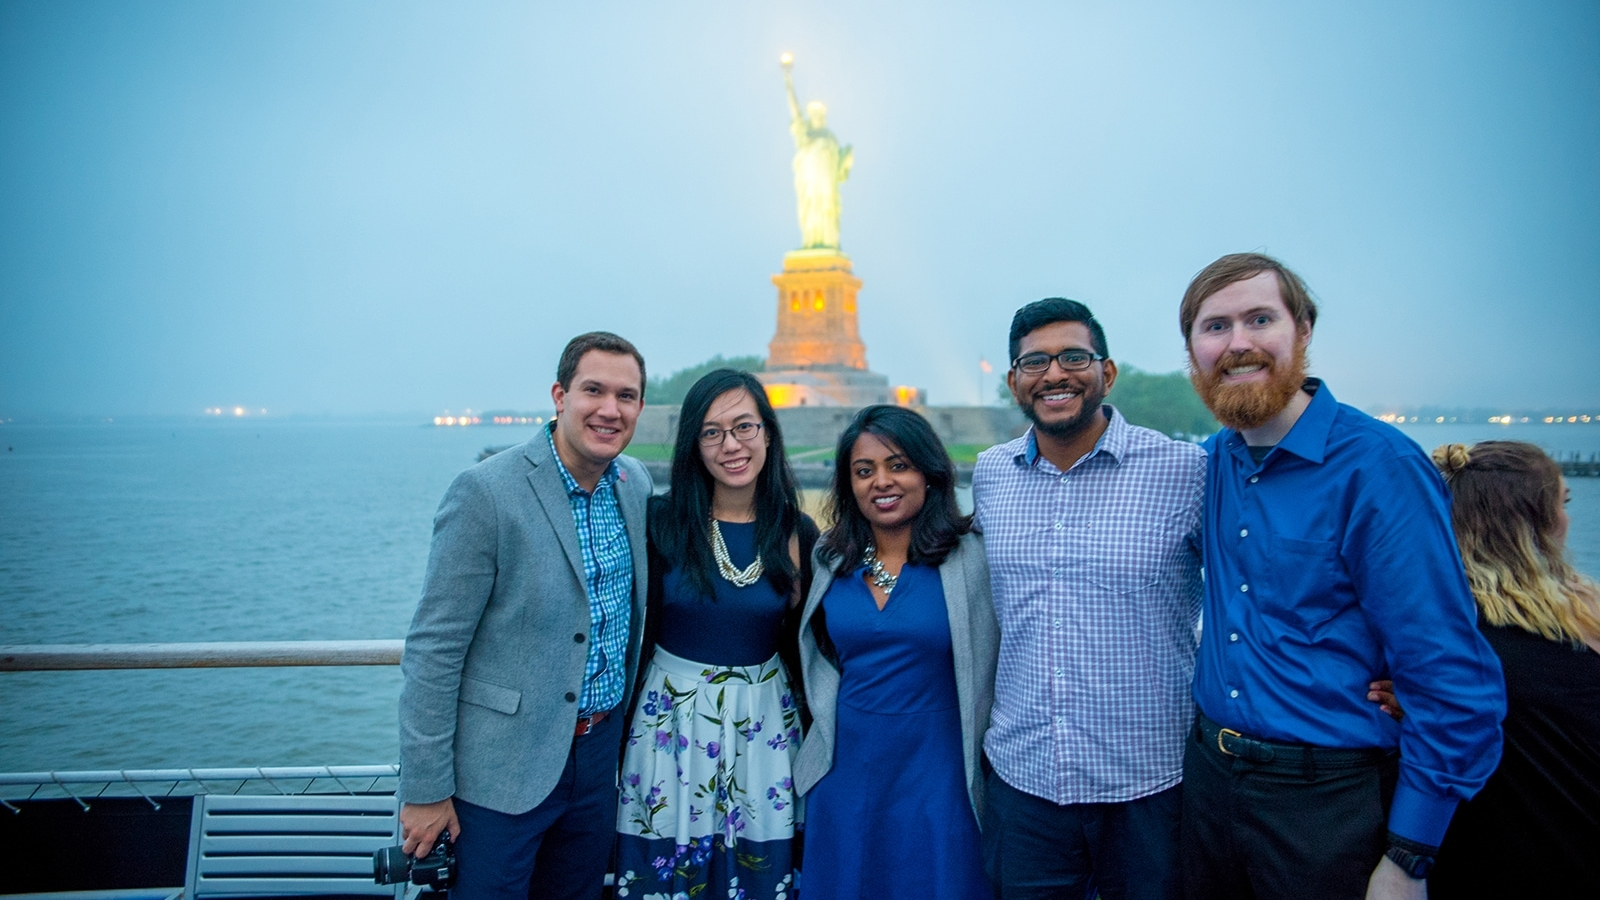 Group of Alumni on boat infront of statue of liberty